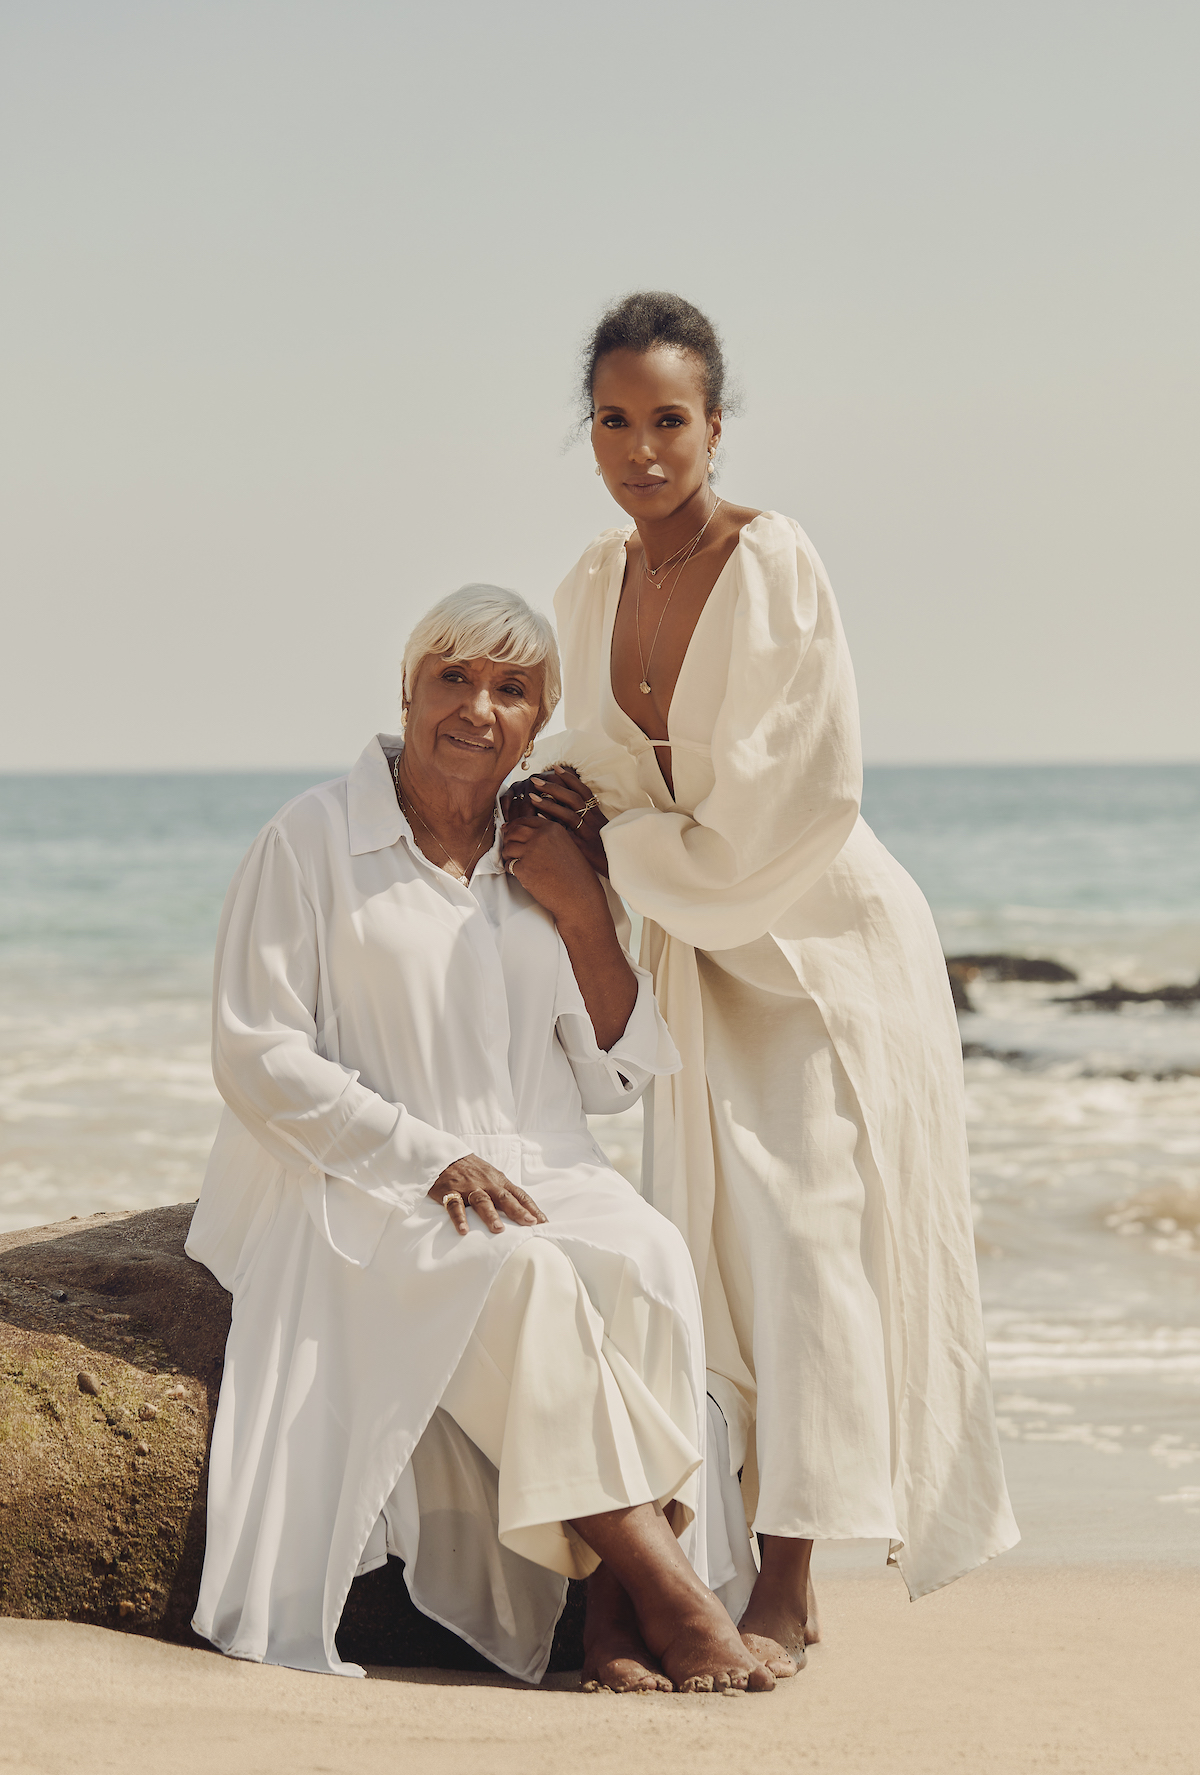 Kerry Washington and mom Valerie Washington model in the campaign for Aurate x Kerry Washington Mother's Day 2021 Jewelry Collection - Photos by David Urbanke